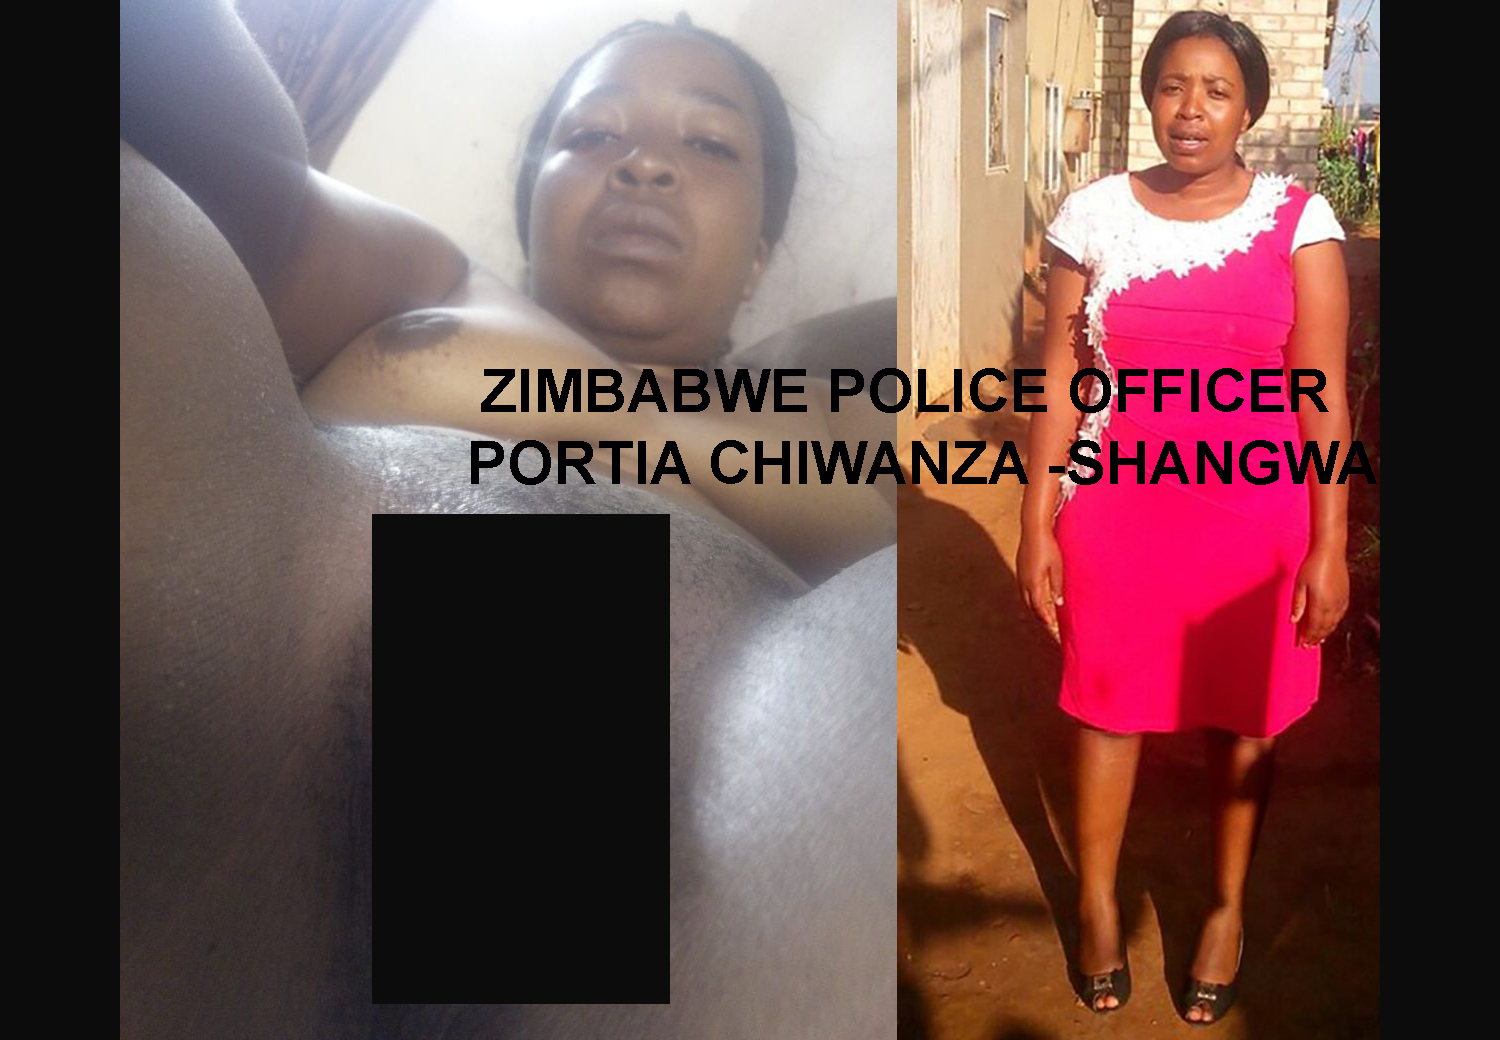 The Nude Image Said To Be Zimbabwe Police Officer And -7348